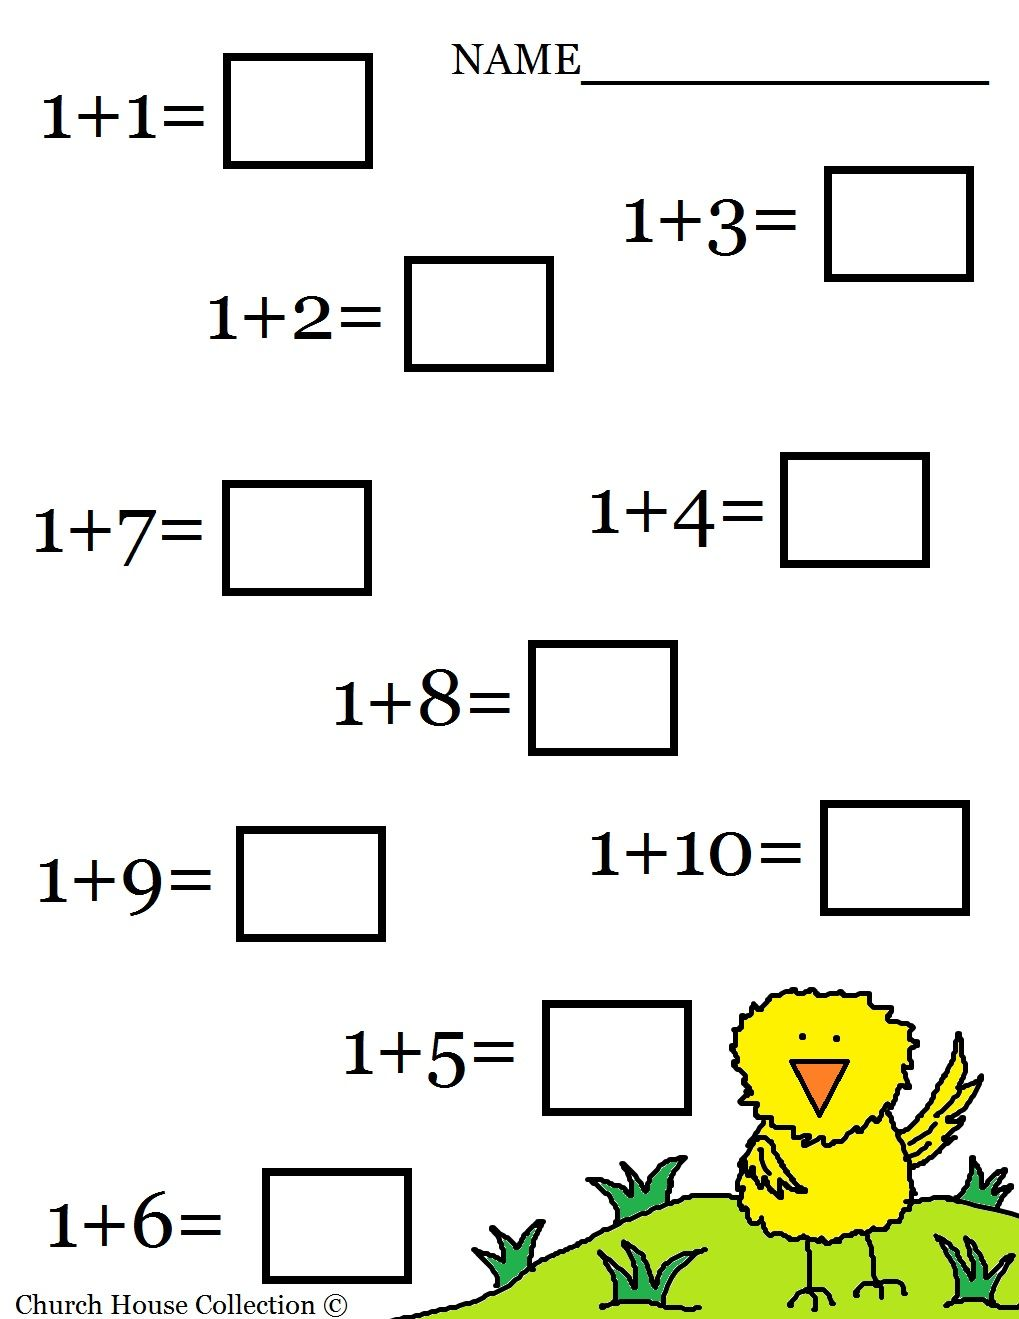 Aldiablosus  Surprising  Images About Worksheets  Math On Pinterest  Math Sheets  With Entrancing  Images About Worksheets  Math On Pinterest  Math Sheets Math Worksheets For Kindergarten And Simple Addition With Cool Multiplication Coloring Worksheets Free Also Reading Comprehension Worksheets High School Free In Addition Grade Four Math Worksheets And Kindergarten Activities Worksheets As Well As Learning English Vocabulary Worksheets Additionally Science Worksheets Grade  From Pinterestcom With Aldiablosus  Entrancing  Images About Worksheets  Math On Pinterest  Math Sheets  With Cool  Images About Worksheets  Math On Pinterest  Math Sheets Math Worksheets For Kindergarten And Simple Addition And Surprising Multiplication Coloring Worksheets Free Also Reading Comprehension Worksheets High School Free In Addition Grade Four Math Worksheets From Pinterestcom